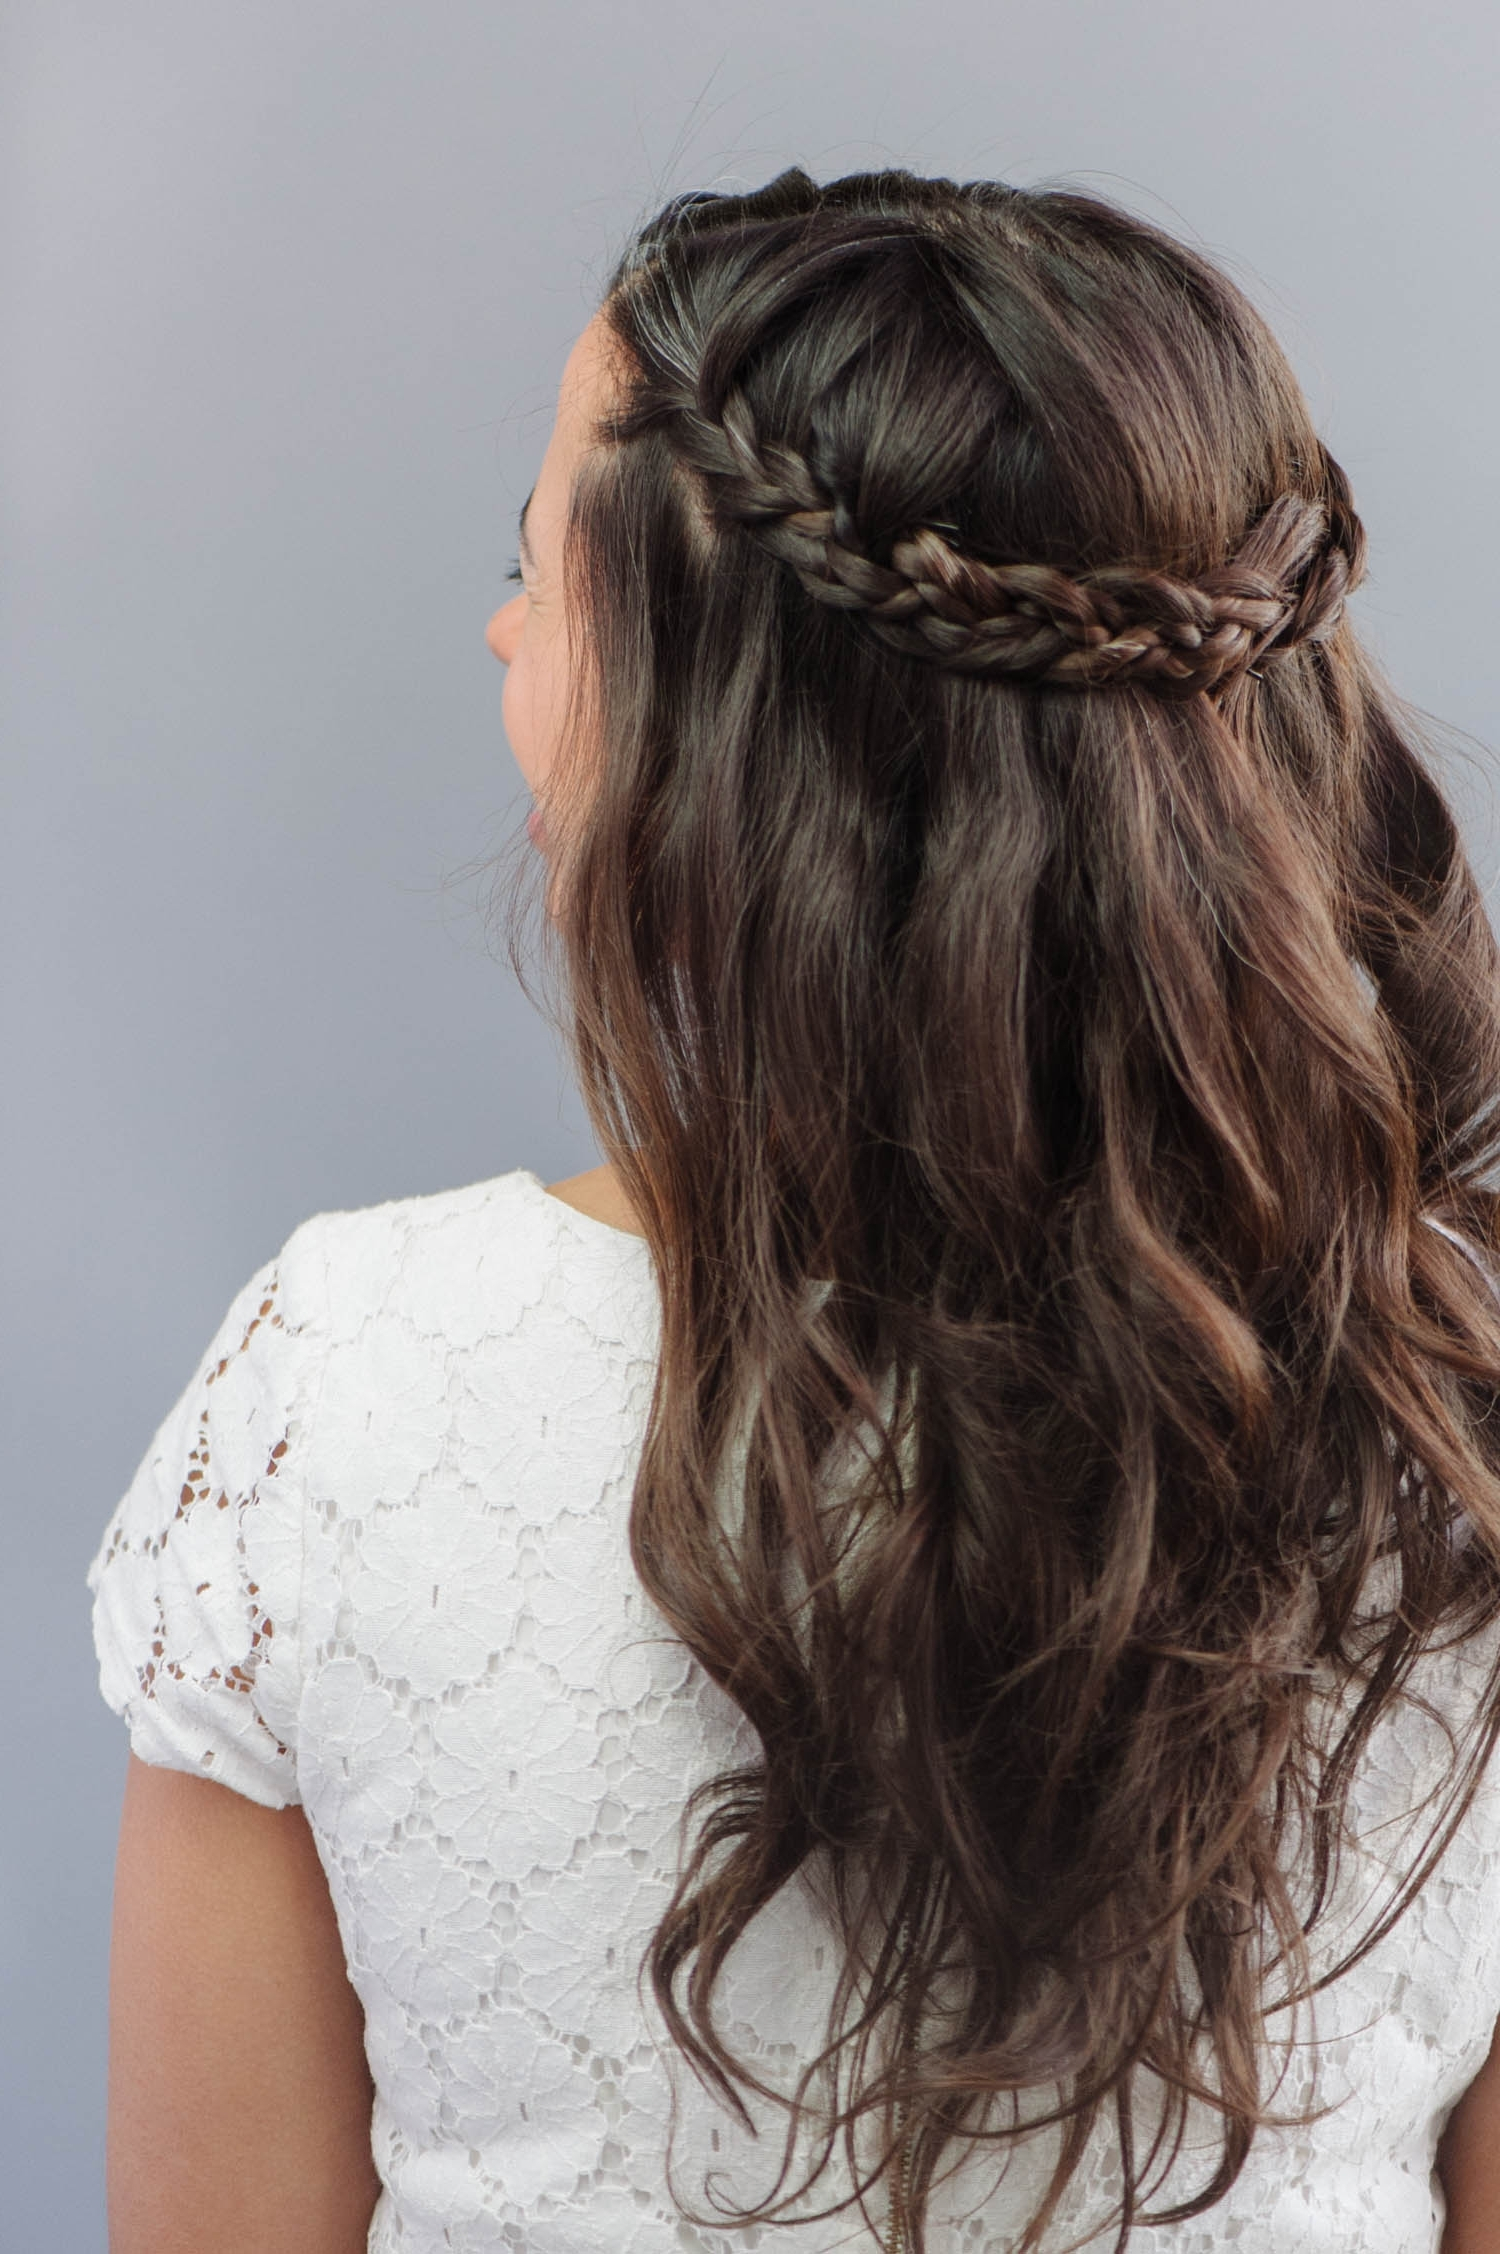 Most Current Braided Hairstyles For Straight Hair With How To: Braided Wedding Hair For Beginners (View 7 of 15)